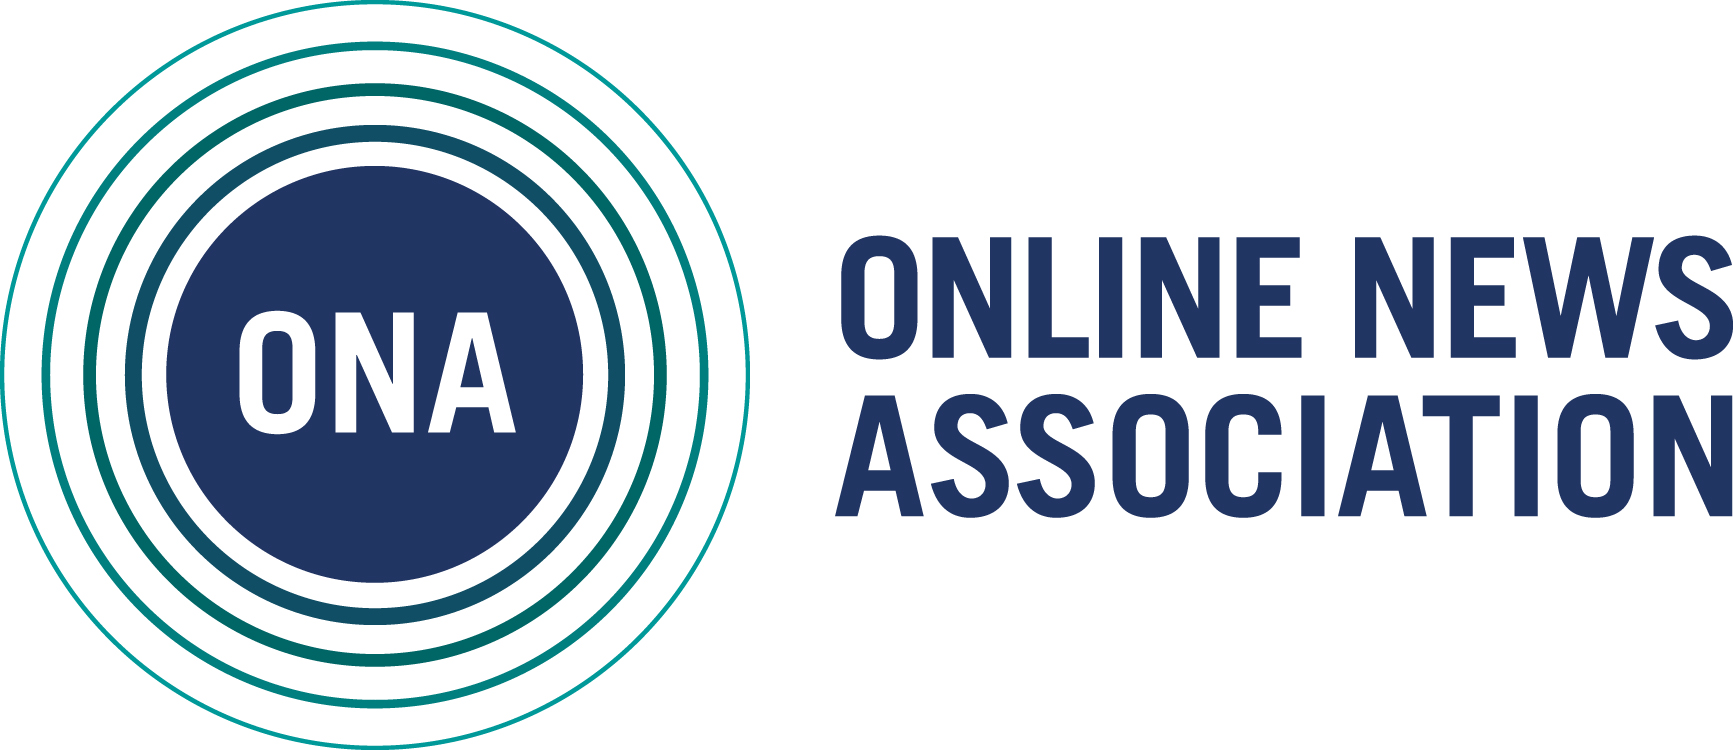 The Online News Association logo.